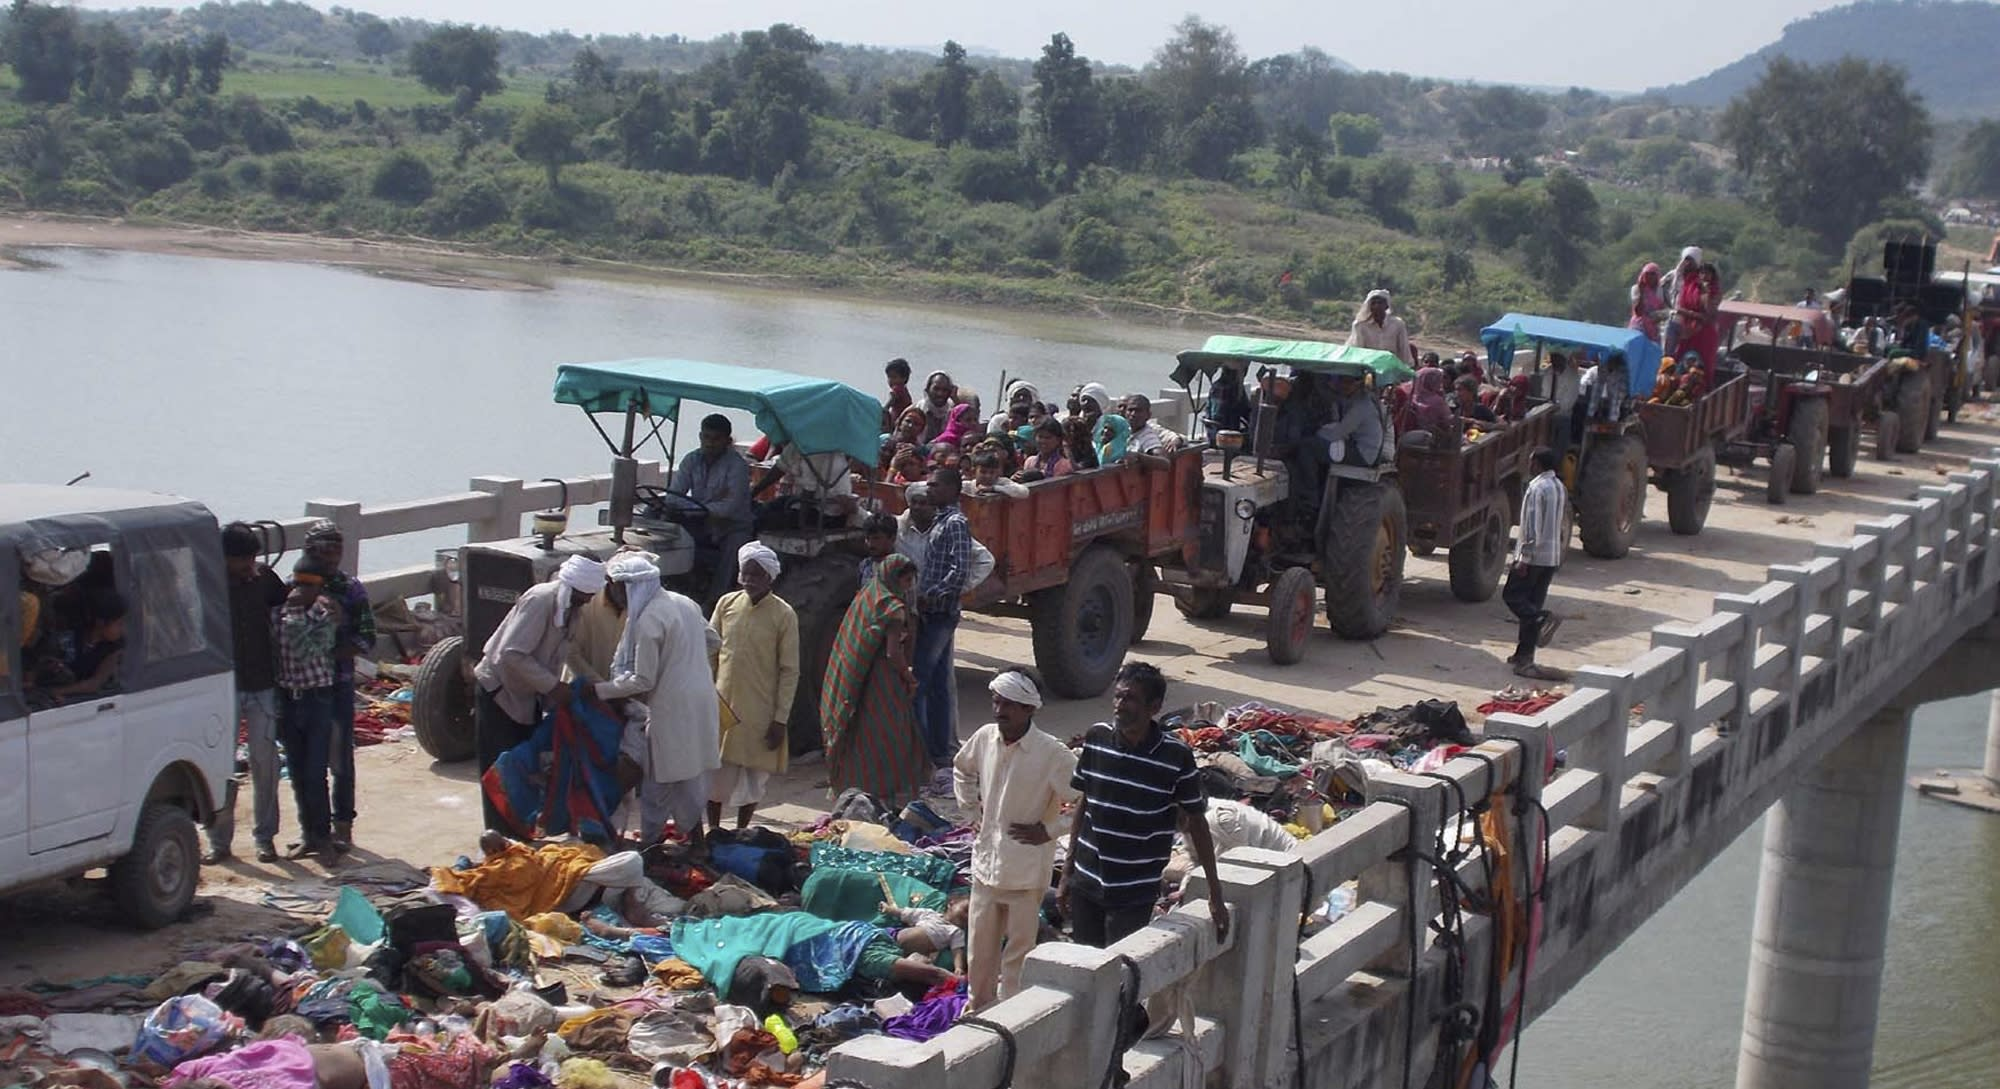 Death Toll In India Temple Stampede Rises To 109